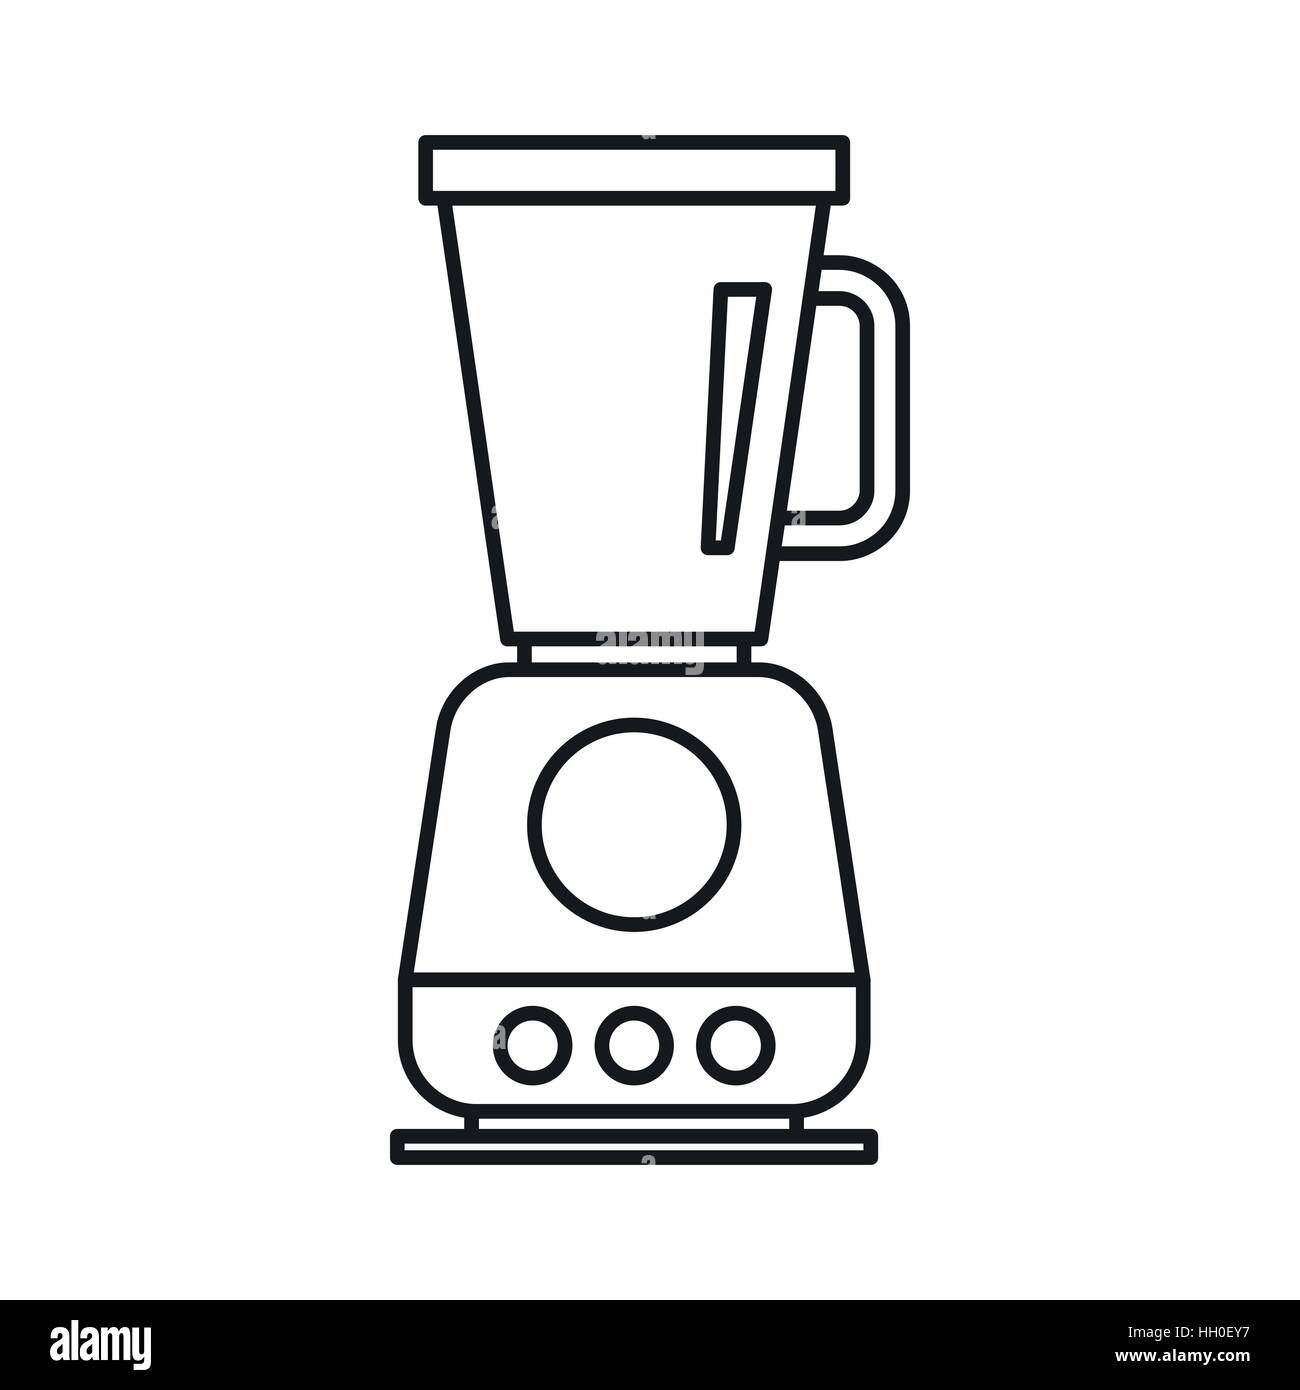 Electric Mixer Outline ~ Food processor mixer blender icon outline style stock